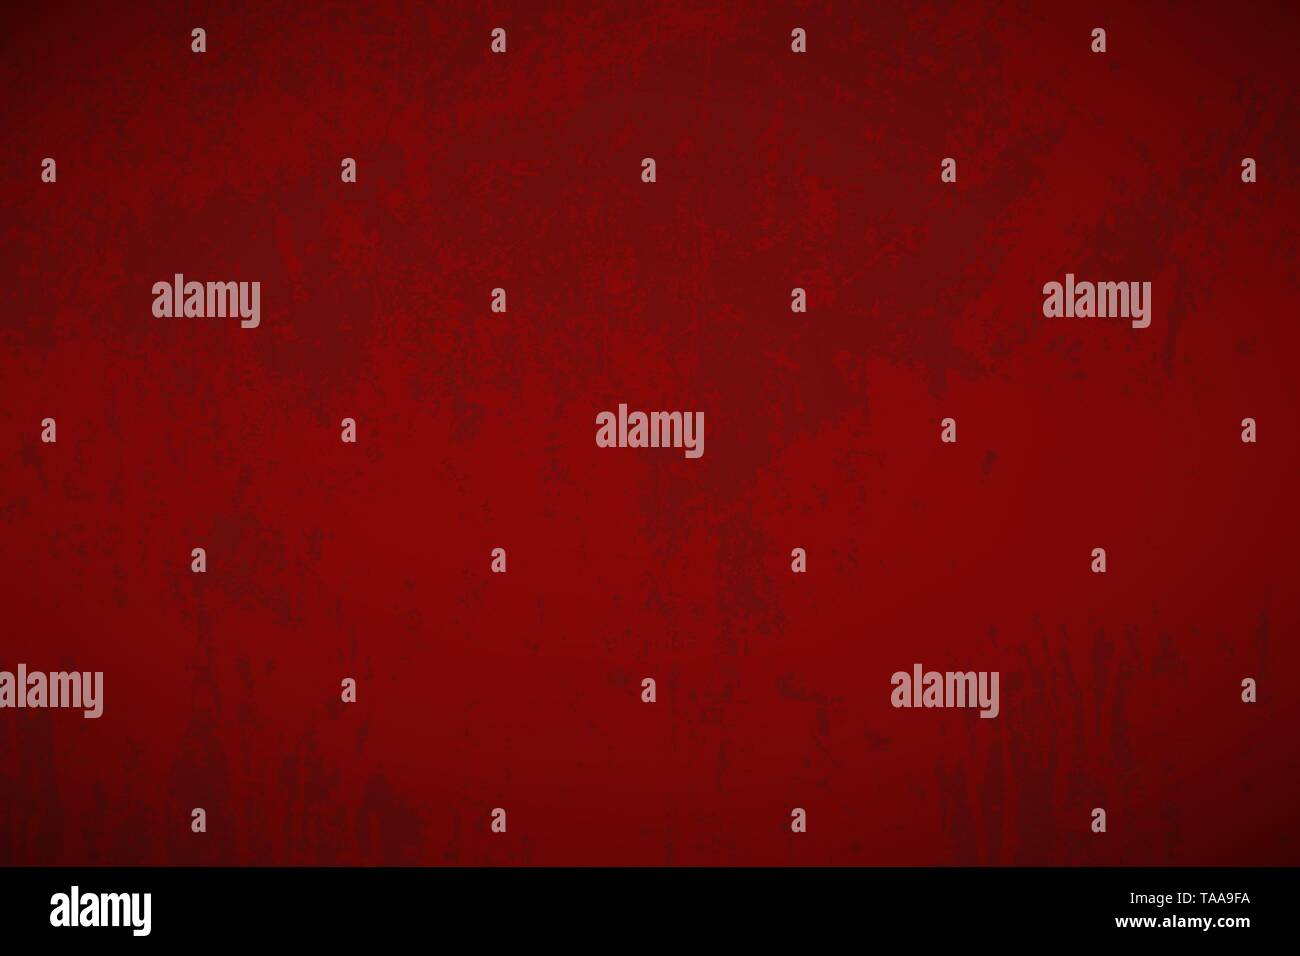 Grunge Red Square Texture For your Design. Empty expressive Distressed Background. EPs10 vector - Stock Image